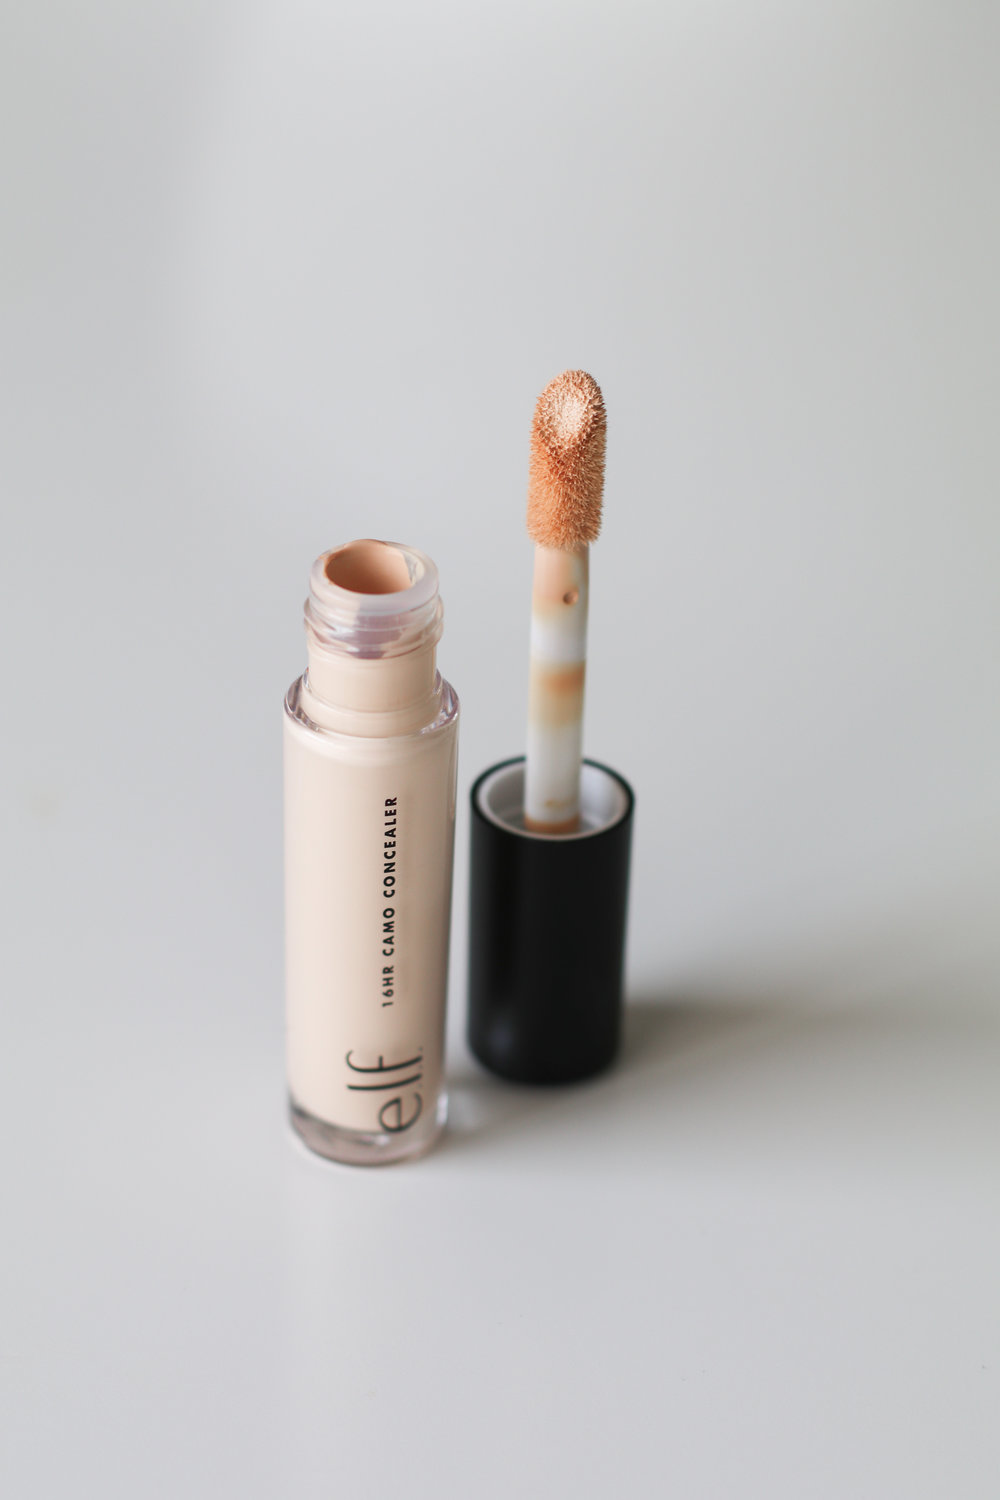 "e.l.f. 16HR Camo Concealer - $5 - What it claims? ""The highly pigmented formula is lightweight, dries matte and won't settle into fine lines or creases.""Pros: Price! At $5, this concealer is a steal! Modeled after Shape Tape, the concealer also has a large doe-foot applicator for large area concealing. I agree that it is lightweight and highly pigmented. If you are looking for a cheaper alternative to Shape Tape, this really is your best choice and it's why I gave it the same rating.Cons: Shade selection is small and a little off. I had to order 3 shades before finding my match (Light Sand). The lighter shades are are a lot lighter in person. But, some reviewers said they noticed oxidation, which means it got darker the longer they wore it, but I did not experience that. Blending with a BeautyBlender did not work well at all. The sponge picked up the product and left a splotchy mess. Fingers are the best option for blending. Like Shape Tape I did find it dry before and after setting with powder.Rating: 3/5Parting thoughts: This is a great Shape Tape dupe with the small caveats of harder shade matching and blending problems, but I could forgive that for the awesome price!"